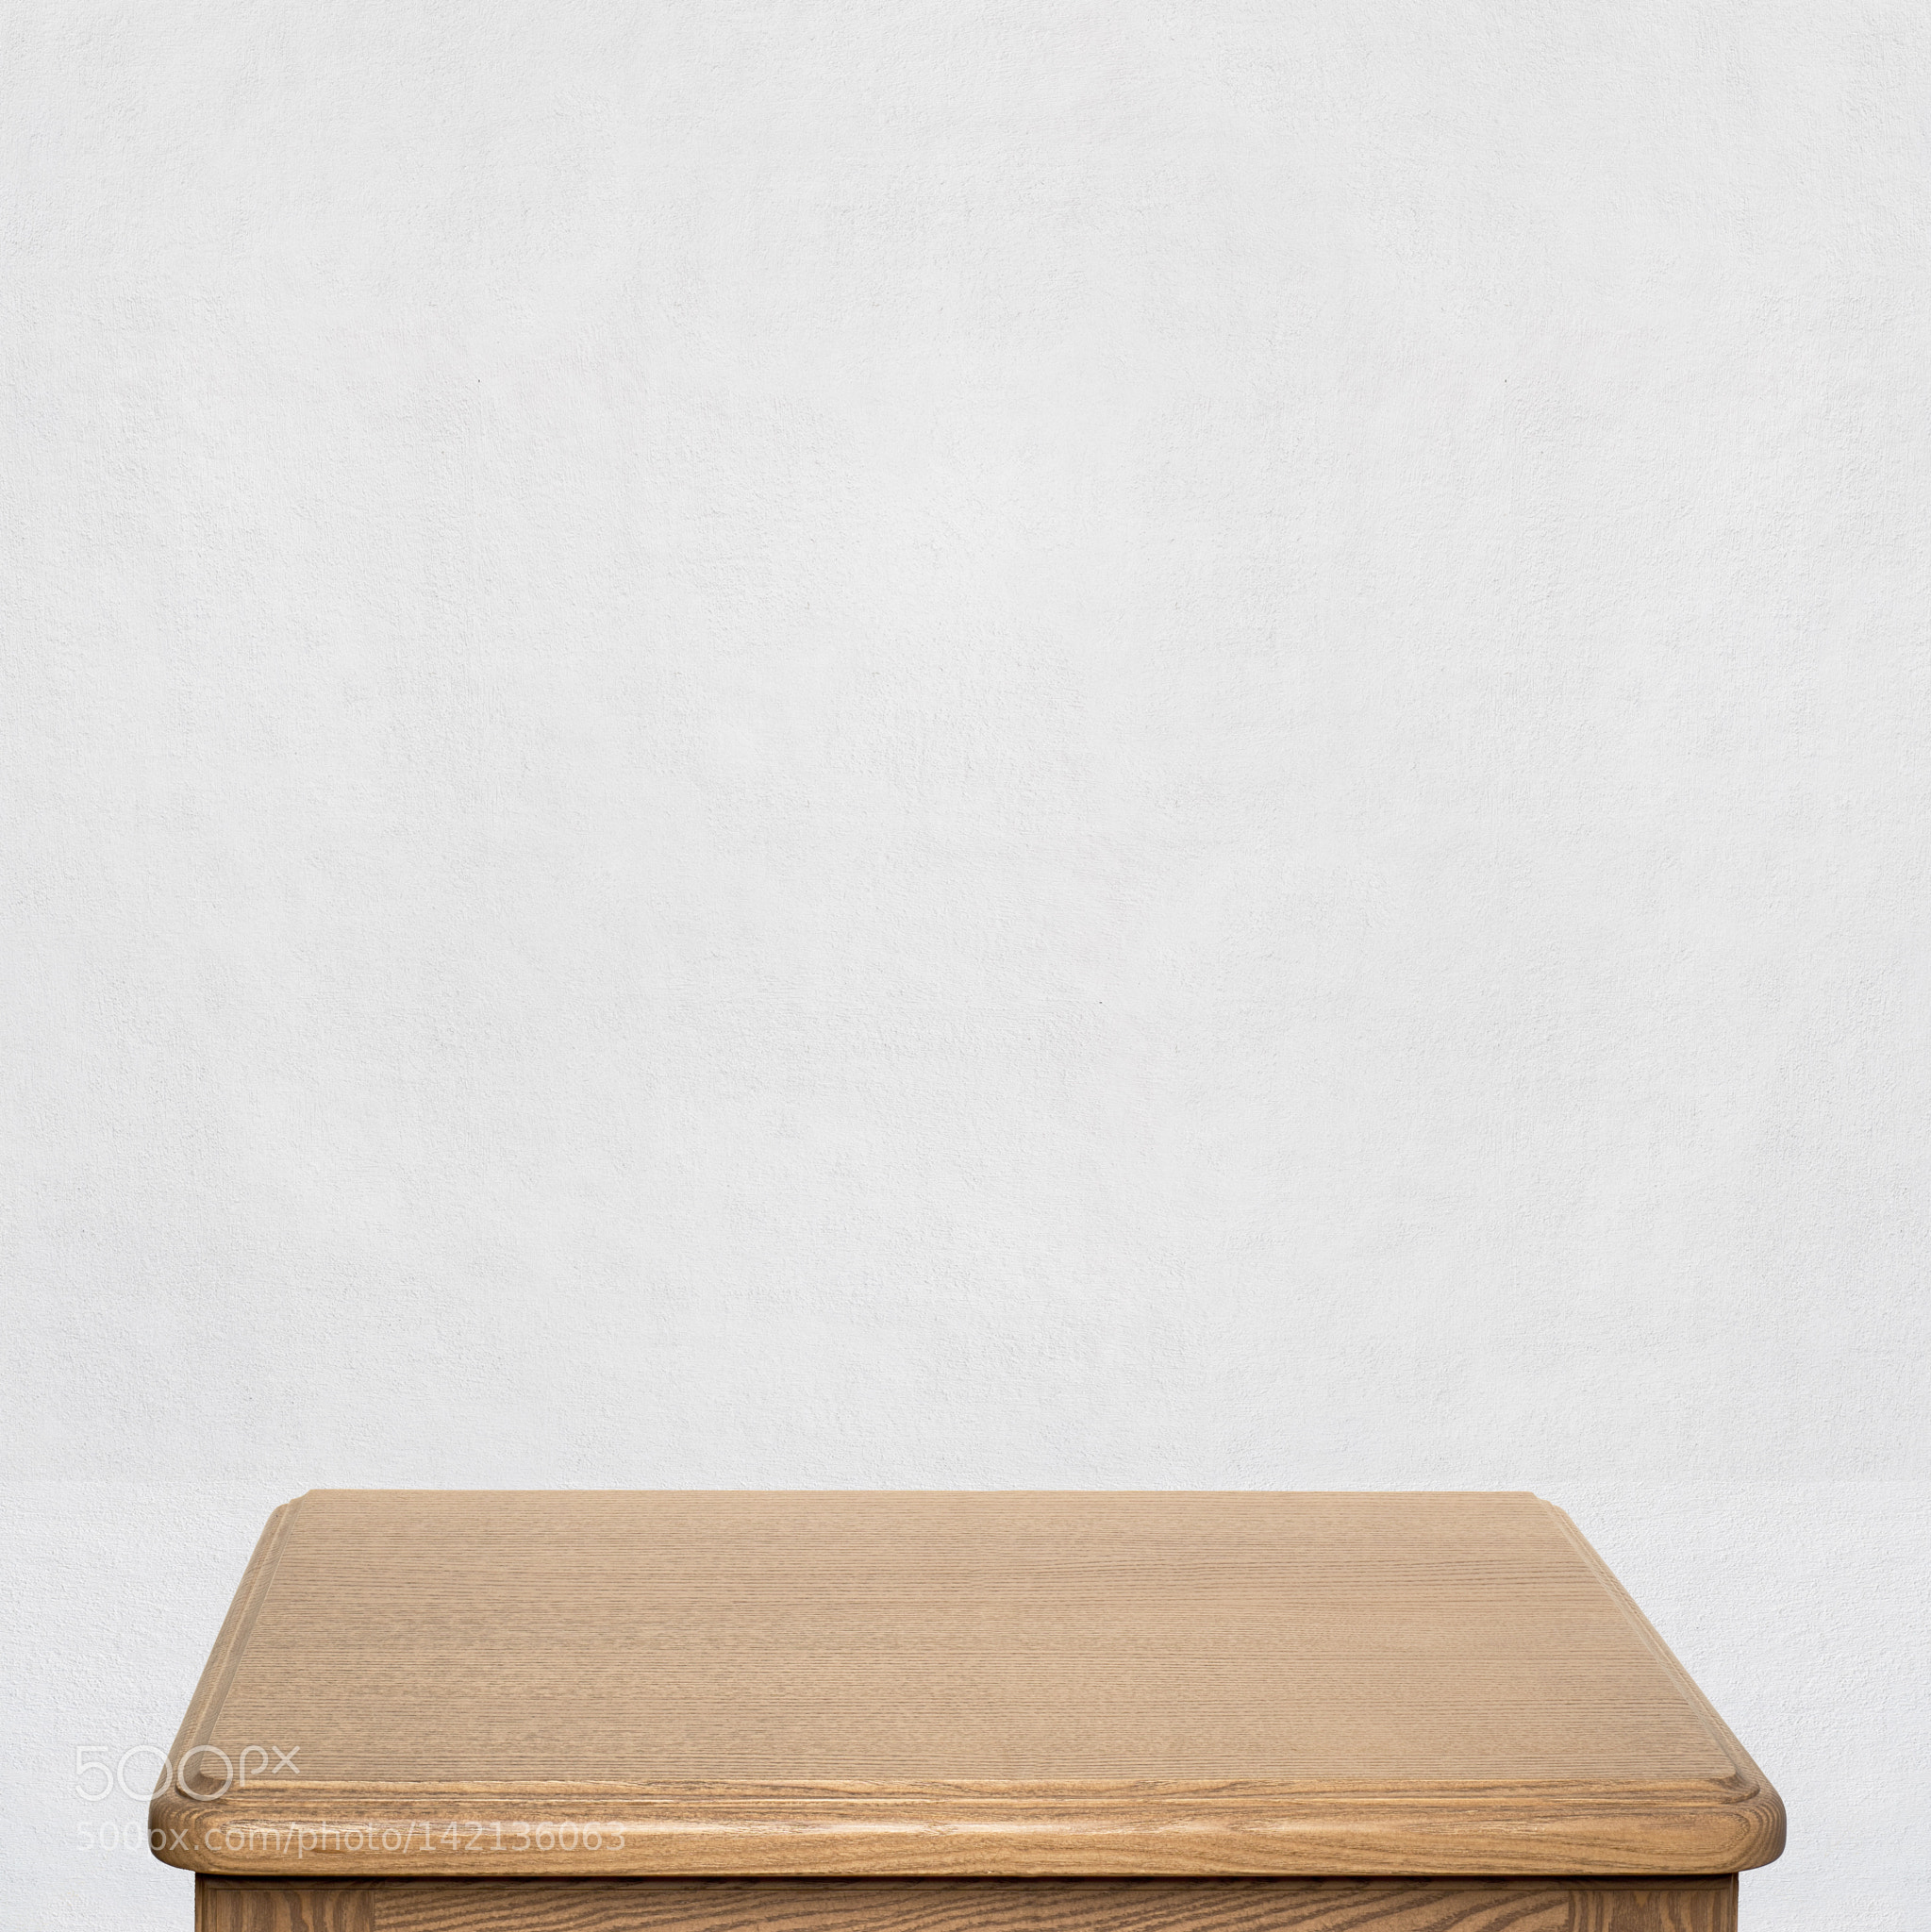 wooden table near the wall